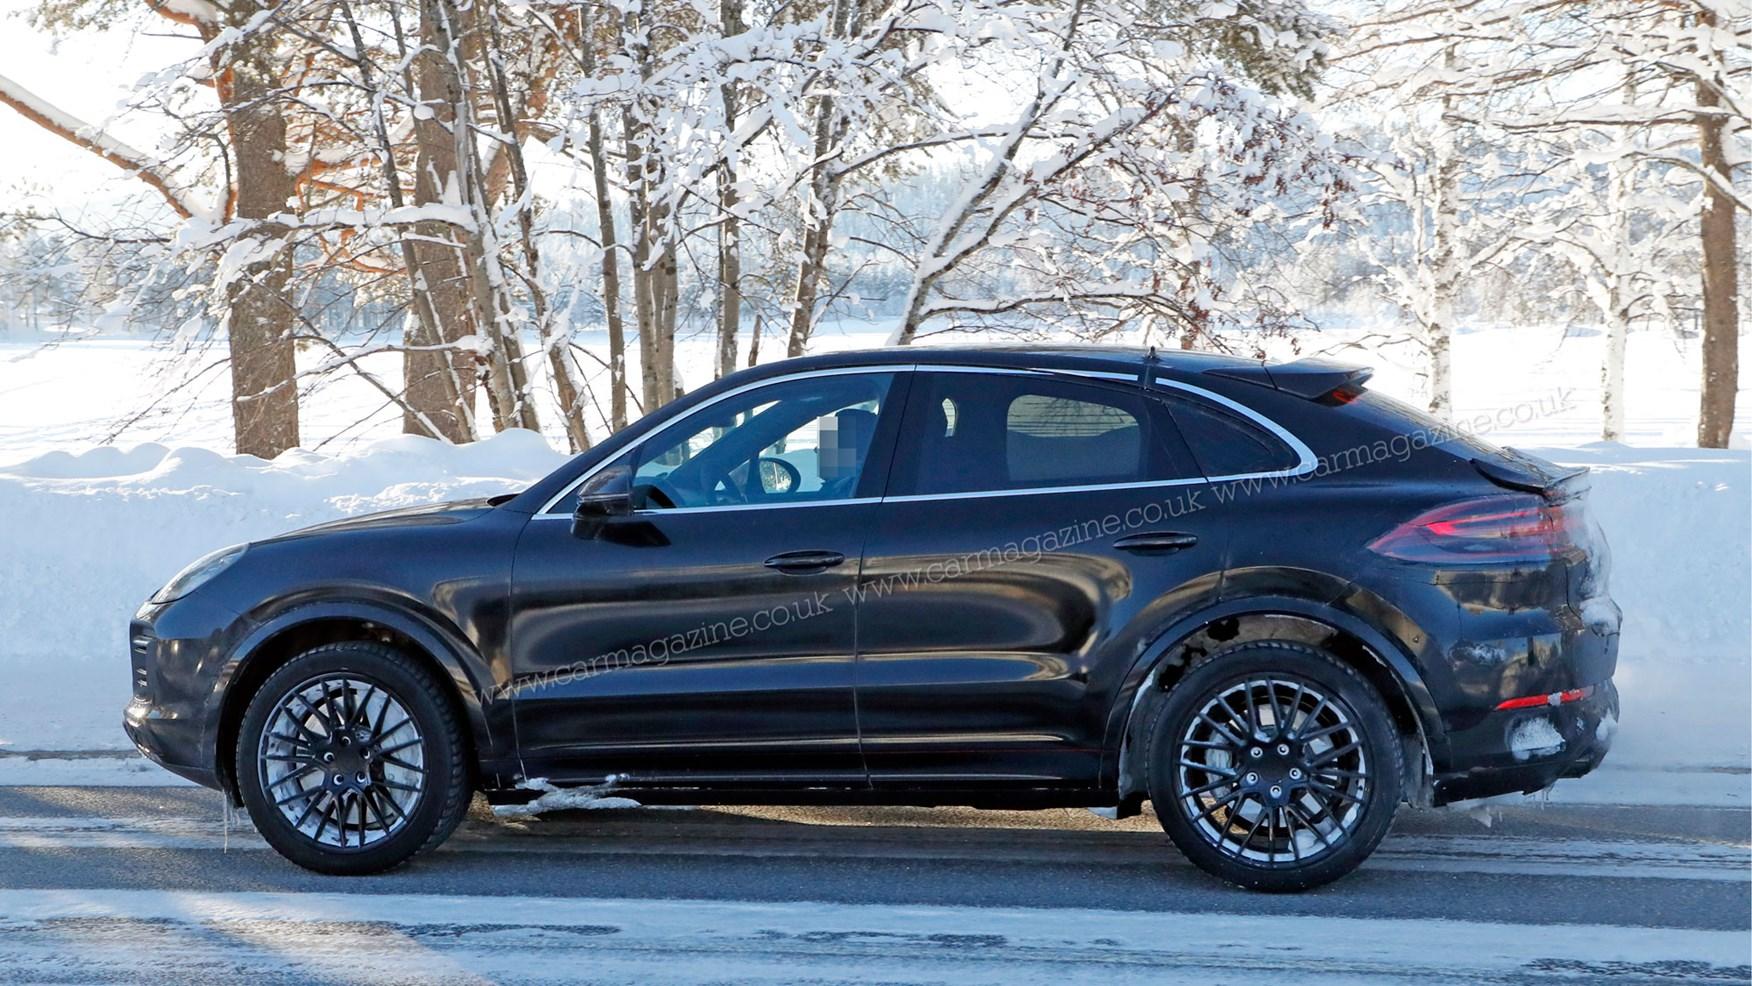 Porsche Cayenne Coupe sporty SUV spotted winter testing CAR 1752x986